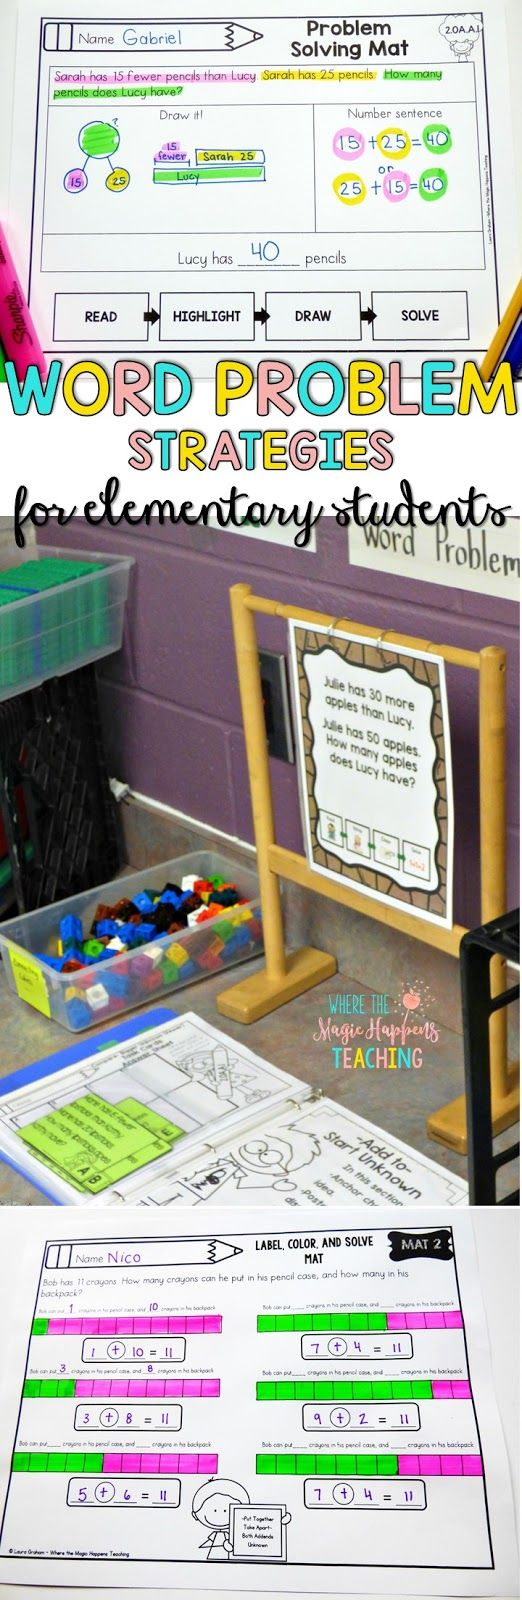 Word problems ideas and resources for 1st and 2nd grade students. Great freebies too! #wordproblems #mathworkshop #firstgrademath #1stgrademath #2ndgrademath #secondgrademath